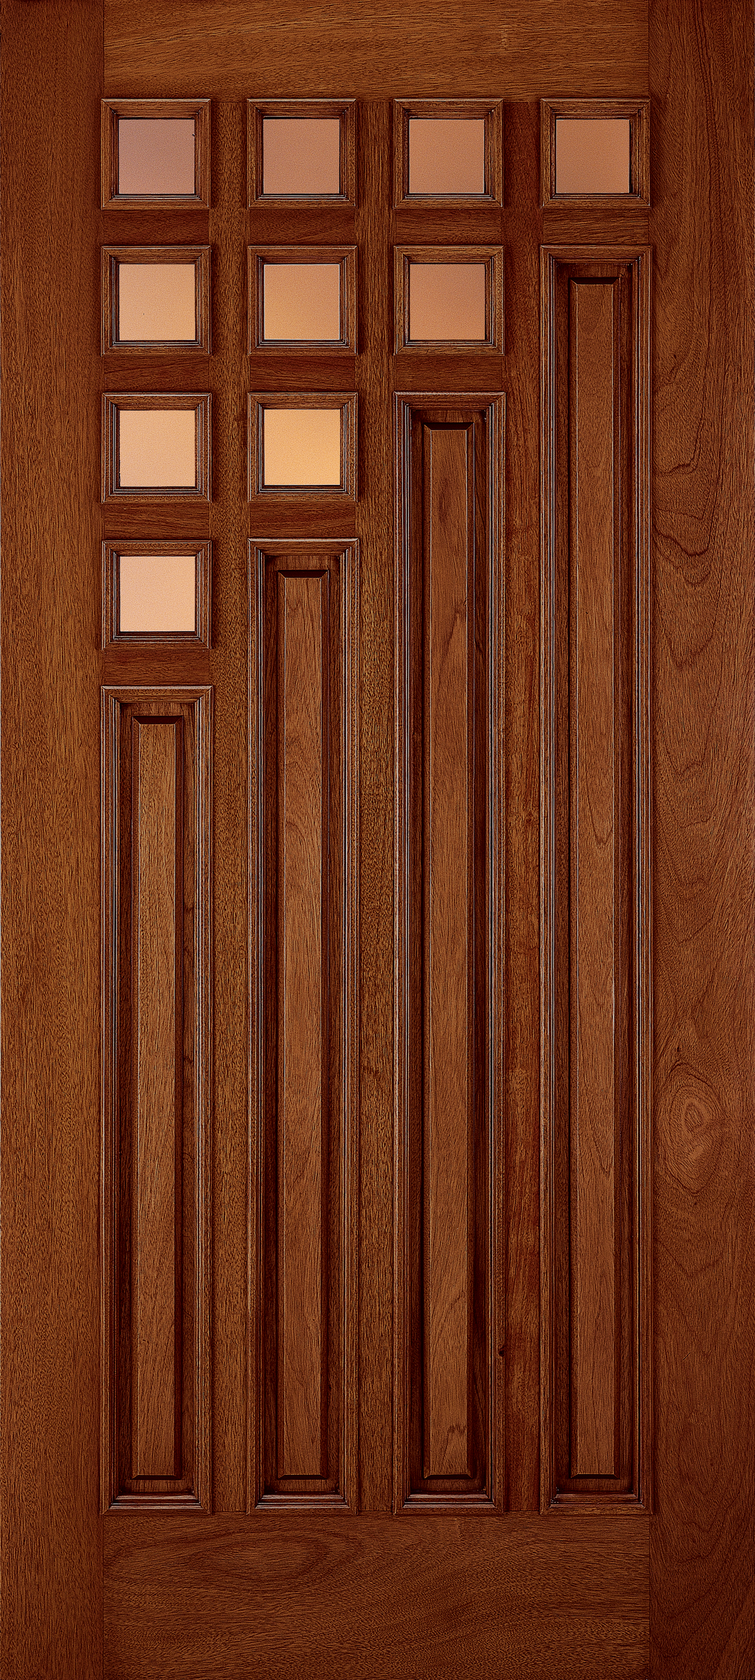 Custom Wood Glass Panel Exterior Door Jeld Wen Windows Amp Doors Wood Doors Interior Wooden Doors Wooden Doors Interior